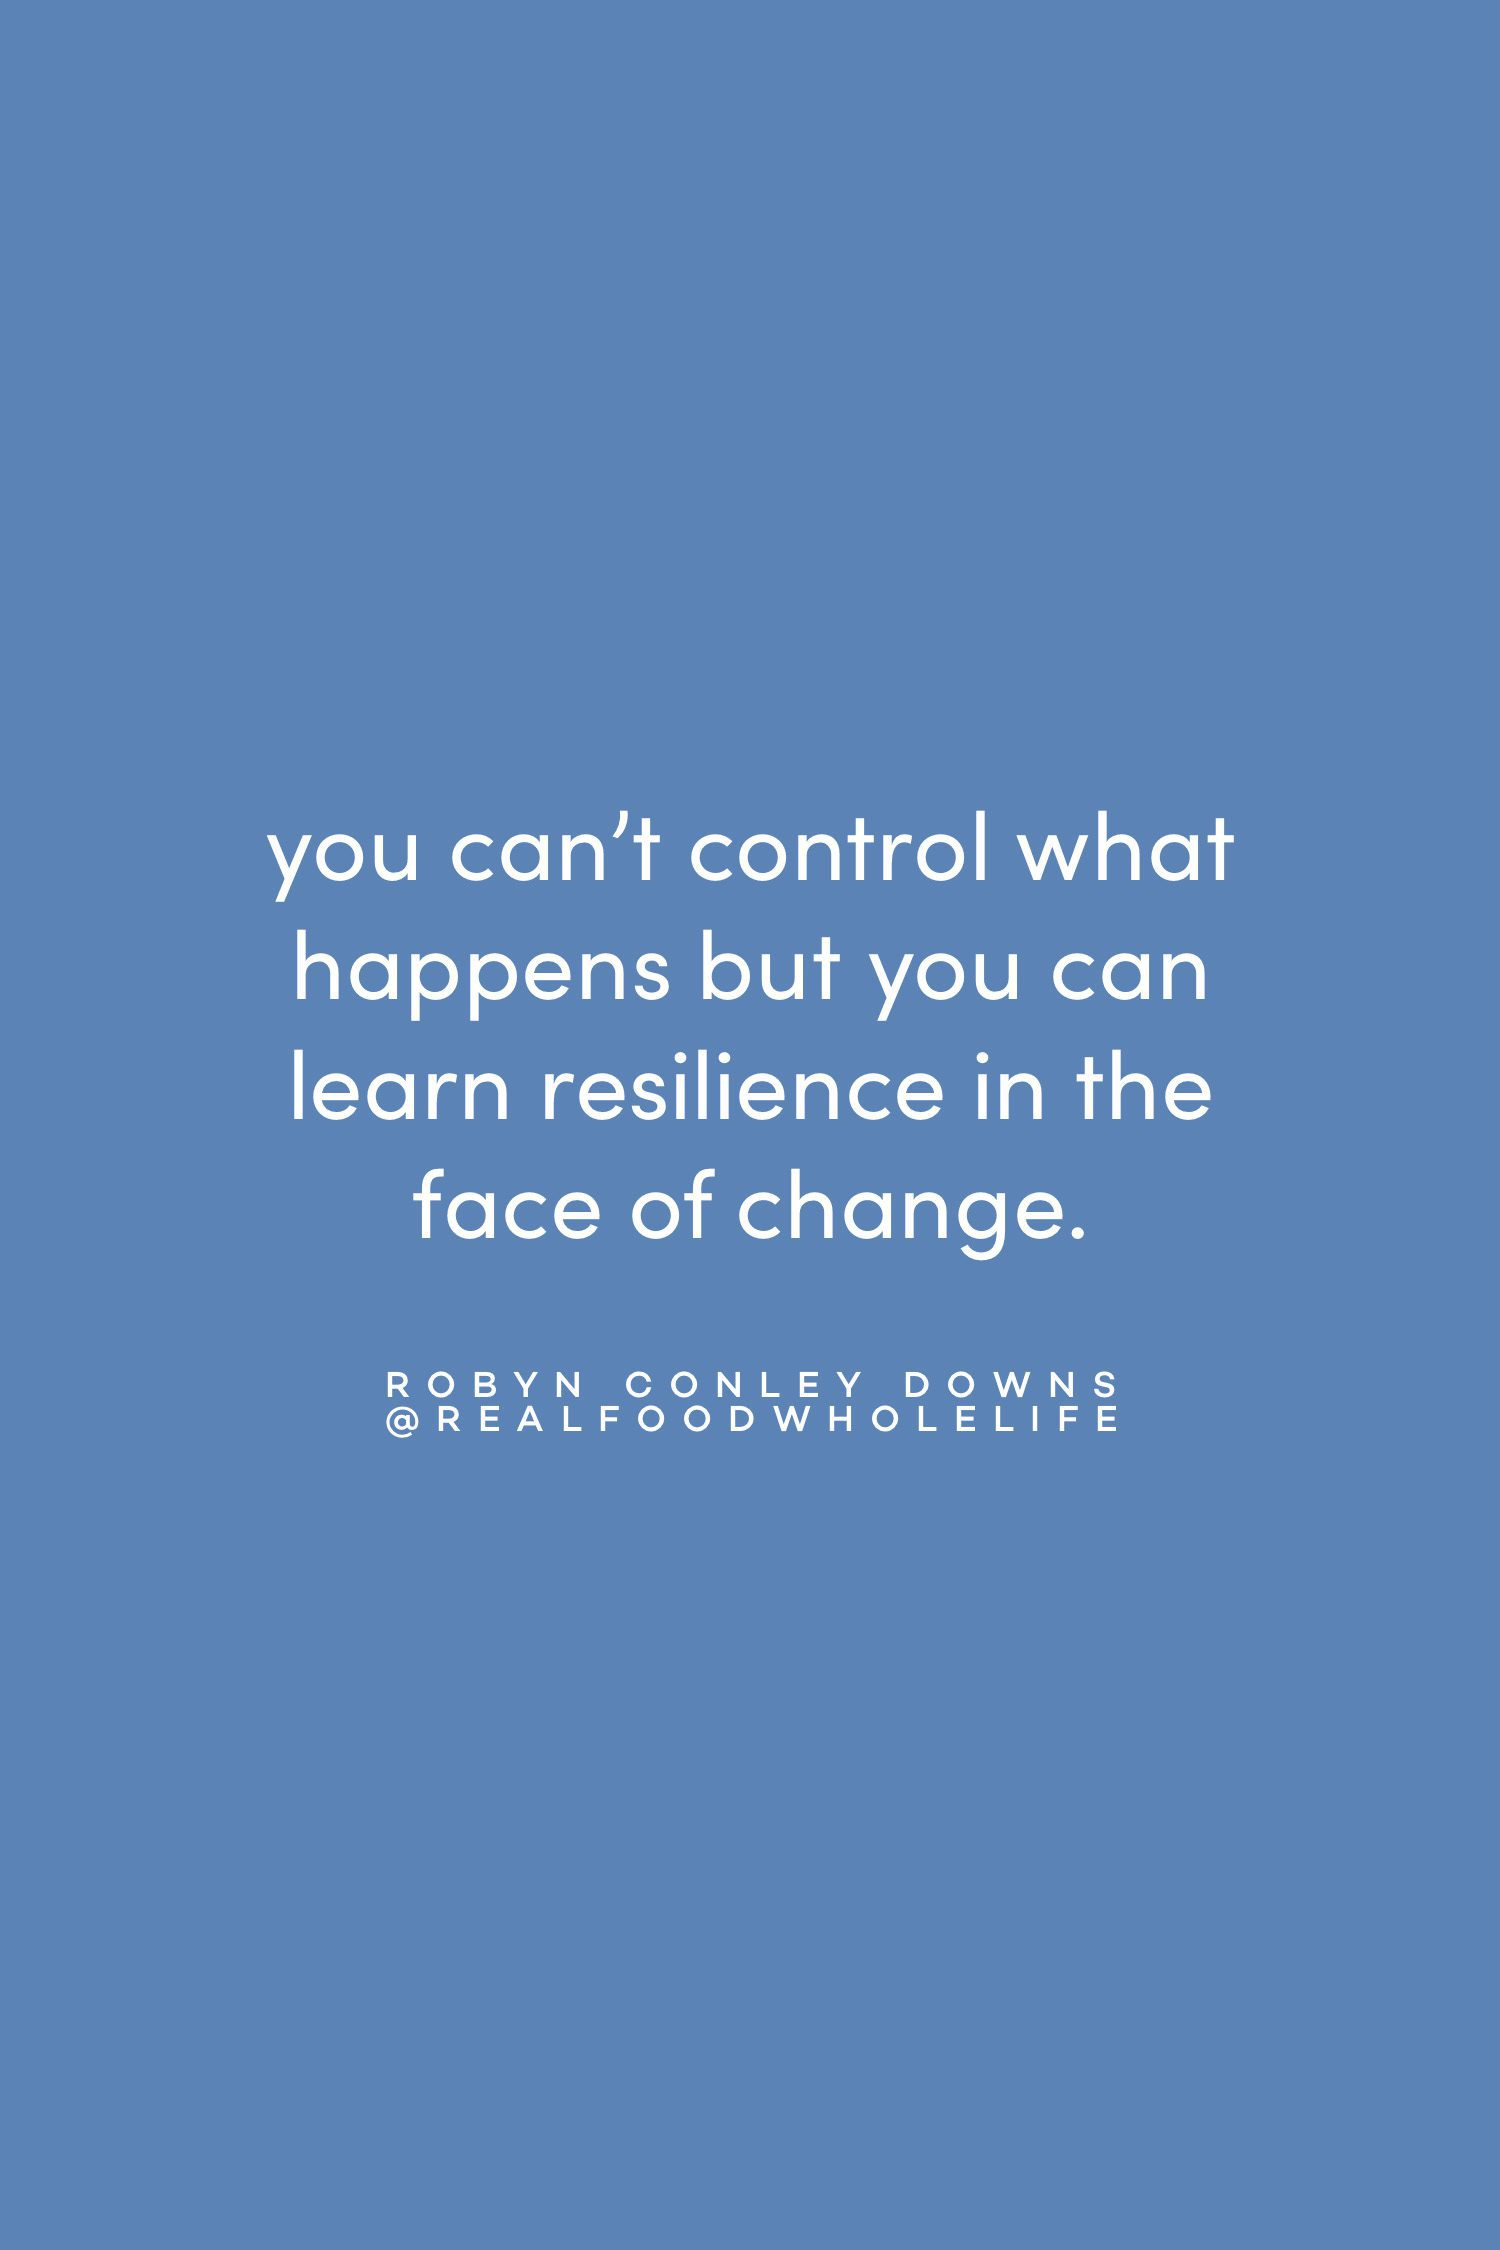 Quote on learning resilience in change by Robyn Conley Downs on the Feel Good Effect Podcast #realfoodwholelife #feelgoodeffectpodcast #realfoodwholelife #motivationalquote #inspirationalquote #positivityquote #feelgoodquote #nonjudgementquote #selfcompassionquote #selfcarequote #selflovequote #healingquote #feelingquote #resiliencequote #changequote